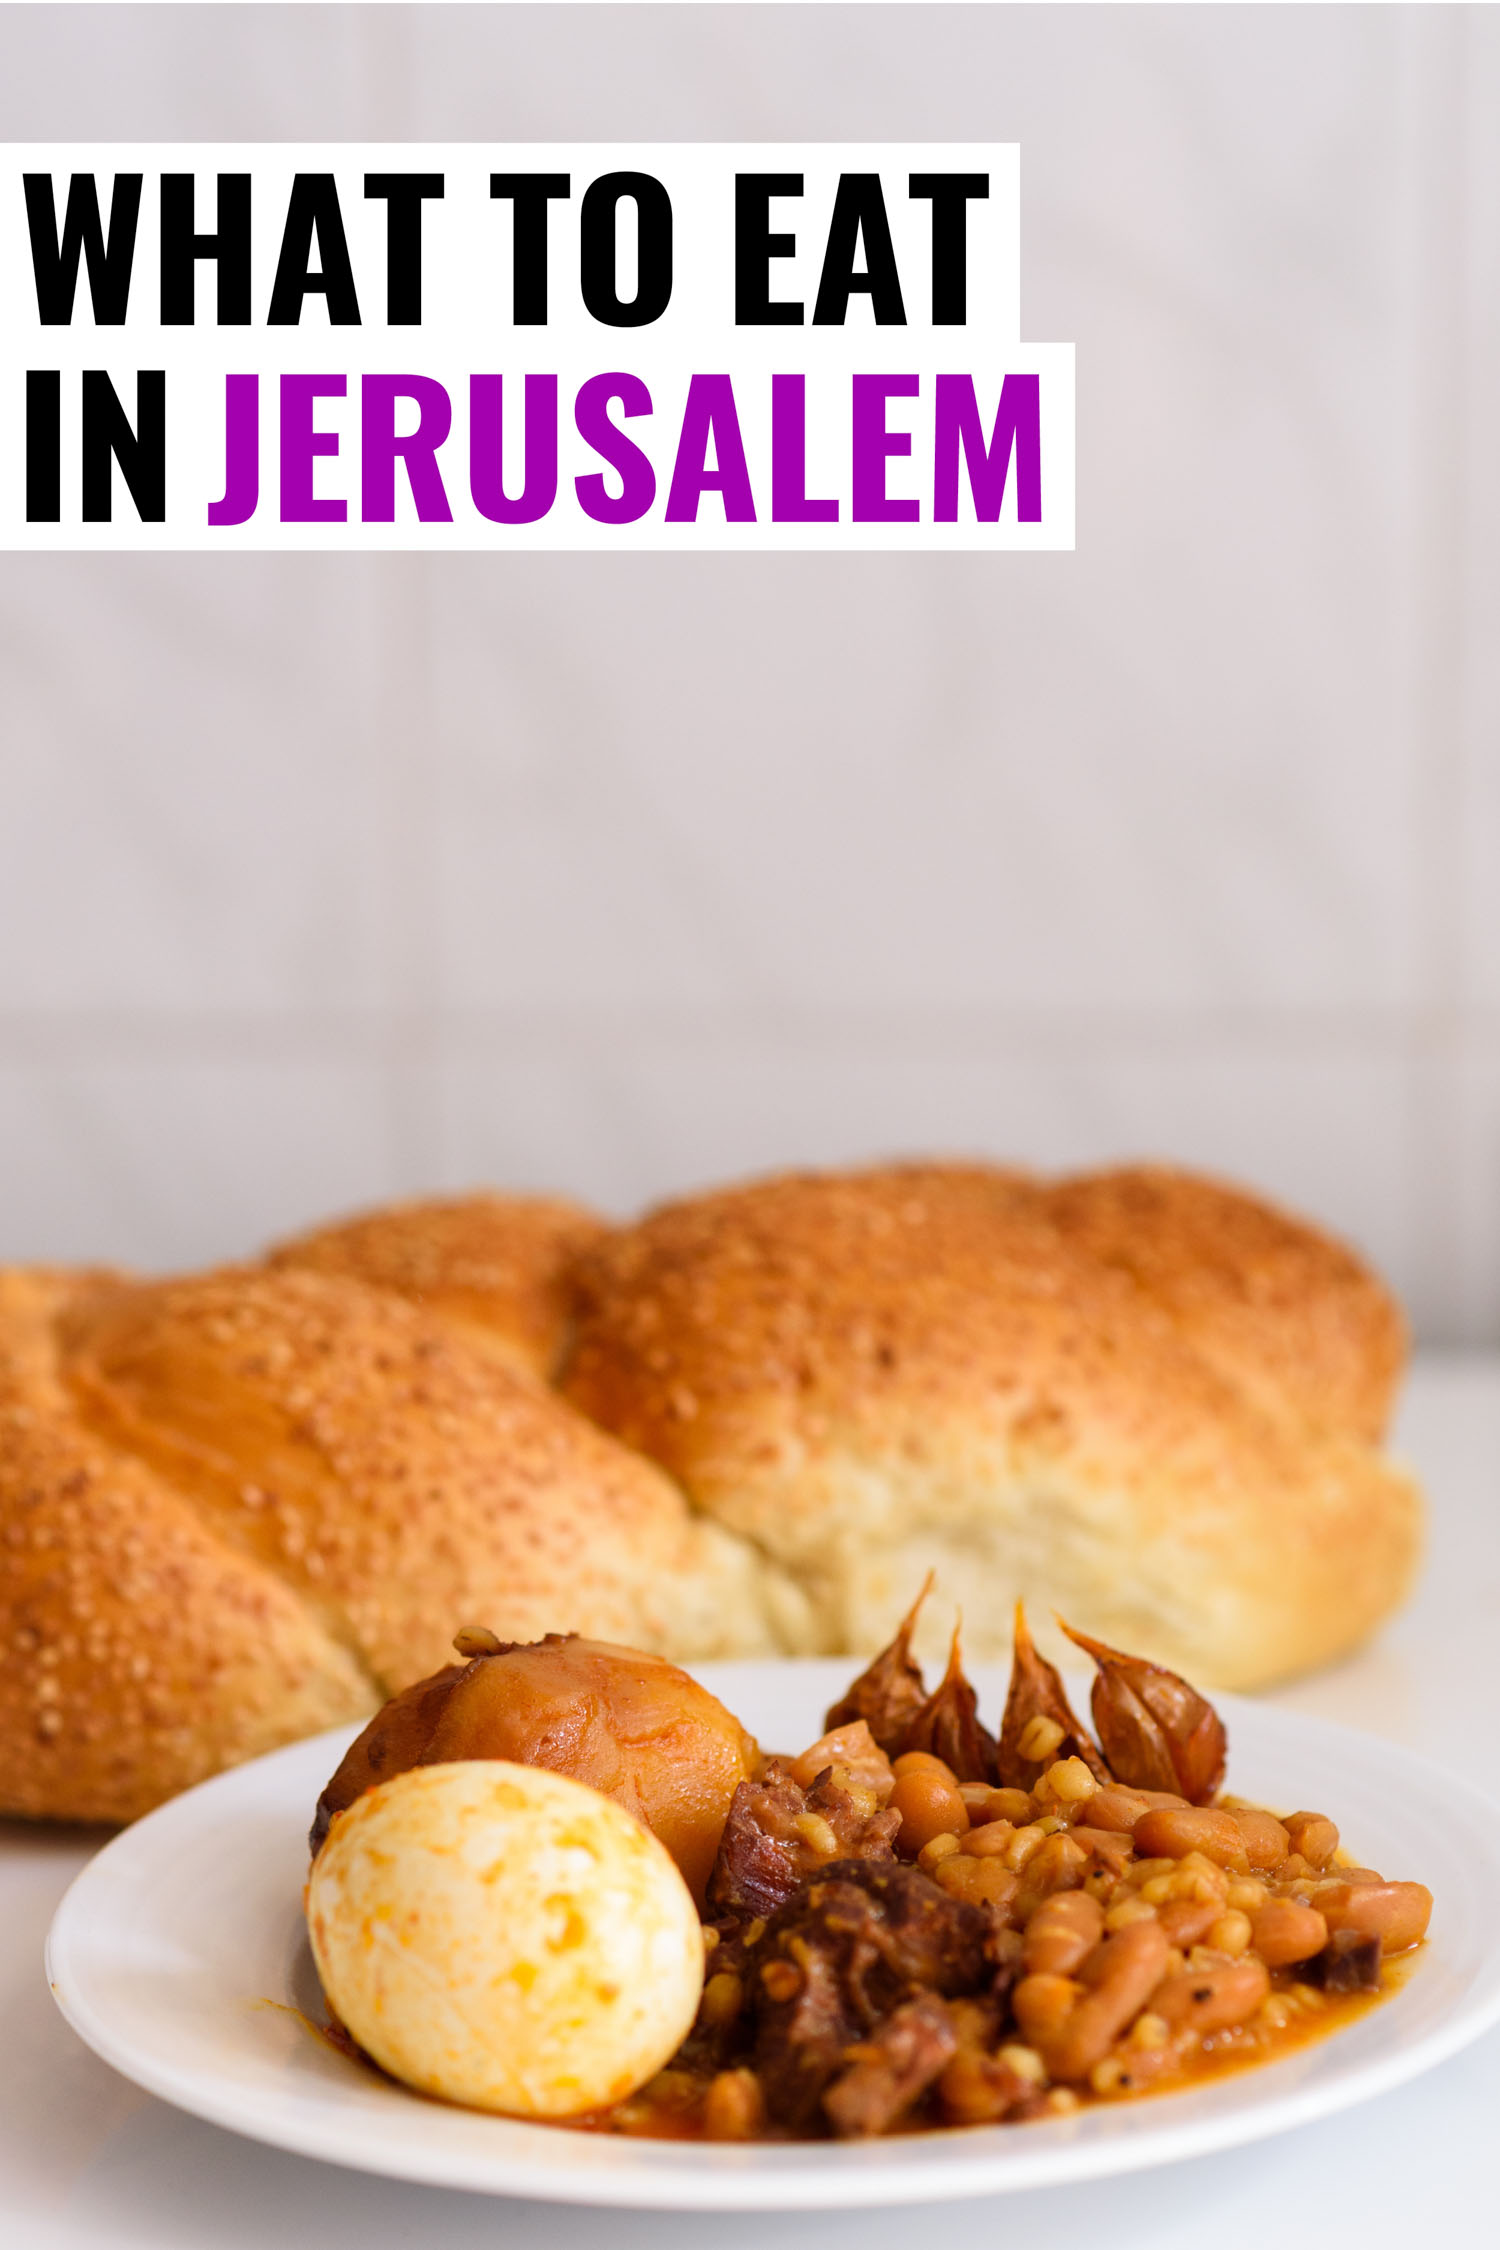 Challah is one of the best things to eat in Jerusalem